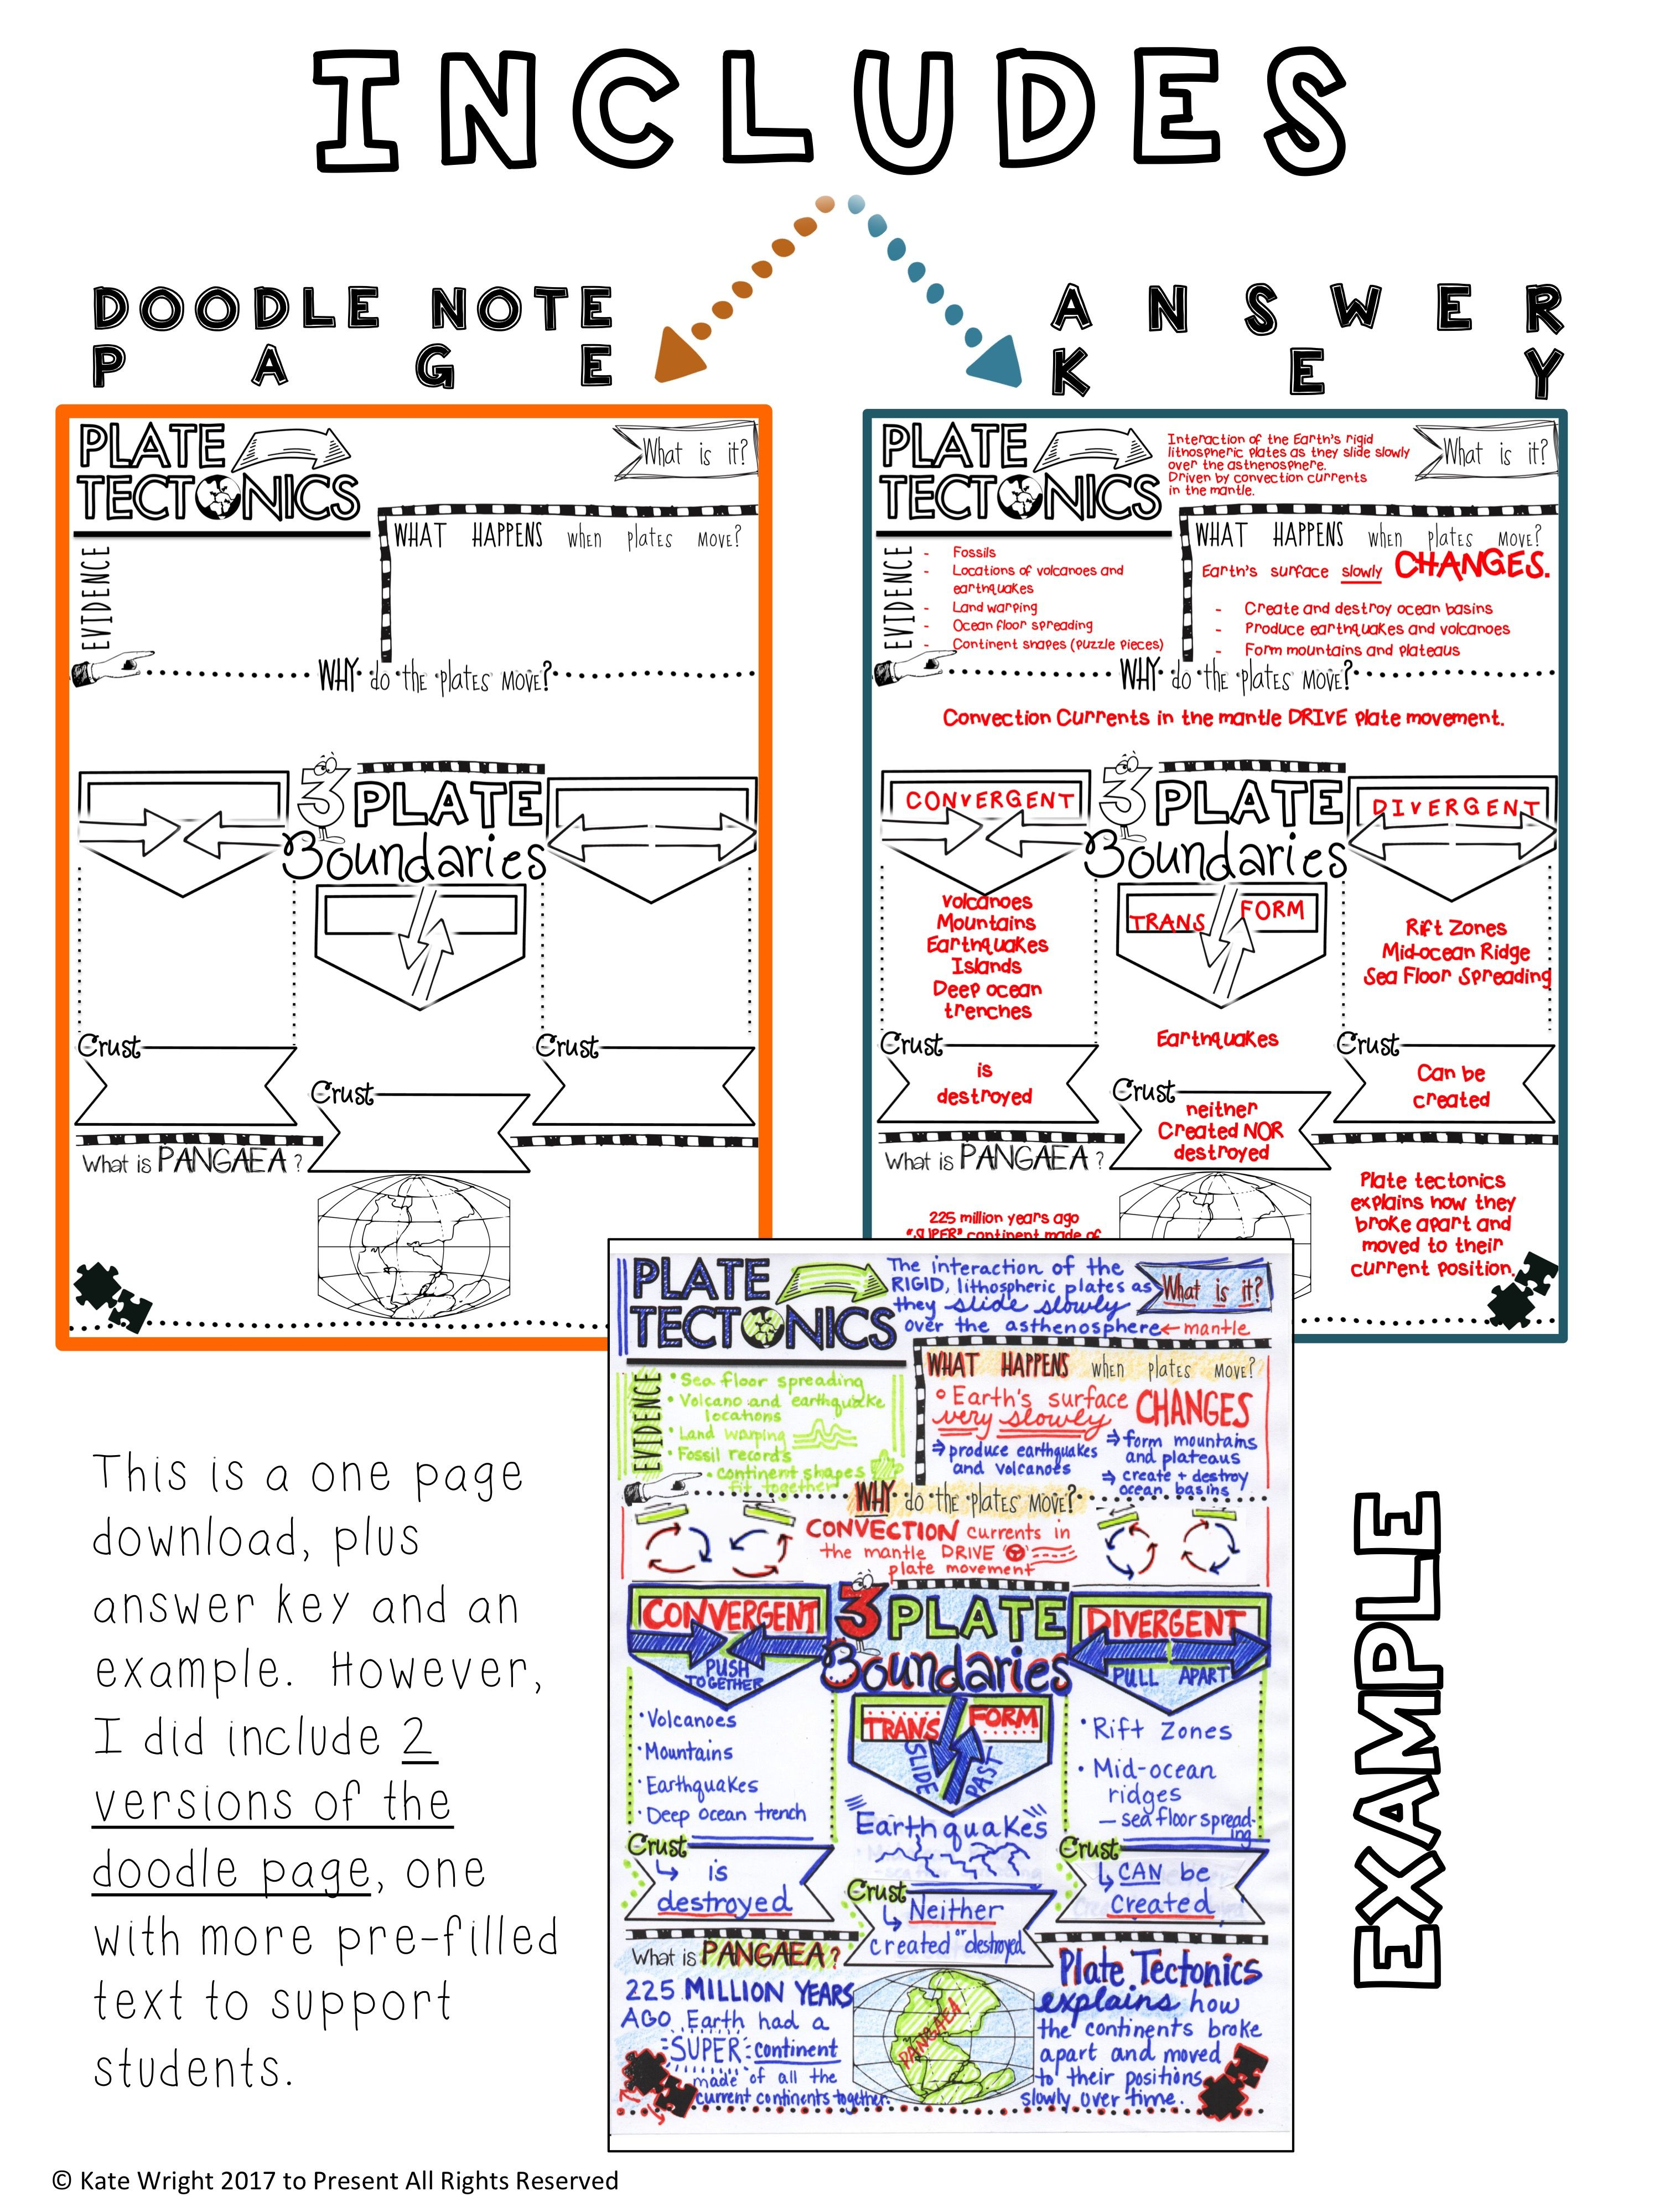 Plate Tectonics Doodle Notes By Kate S Classroom Cafe Teachers Pay Teachers Plate Tectonics Plate Boundaries Doodle Notes